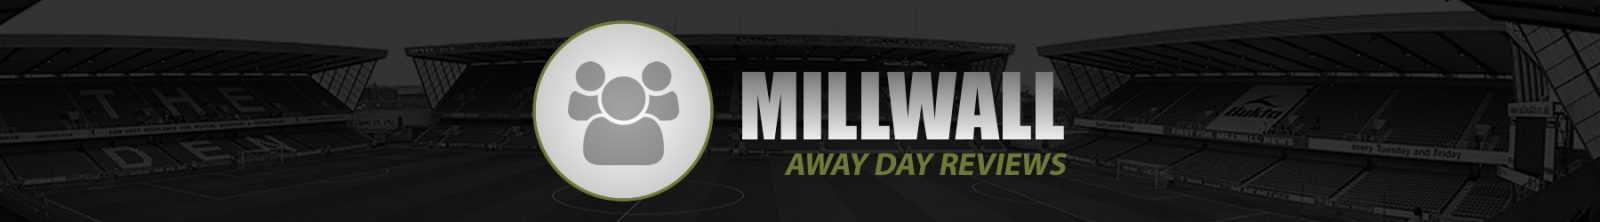 Review Millwall